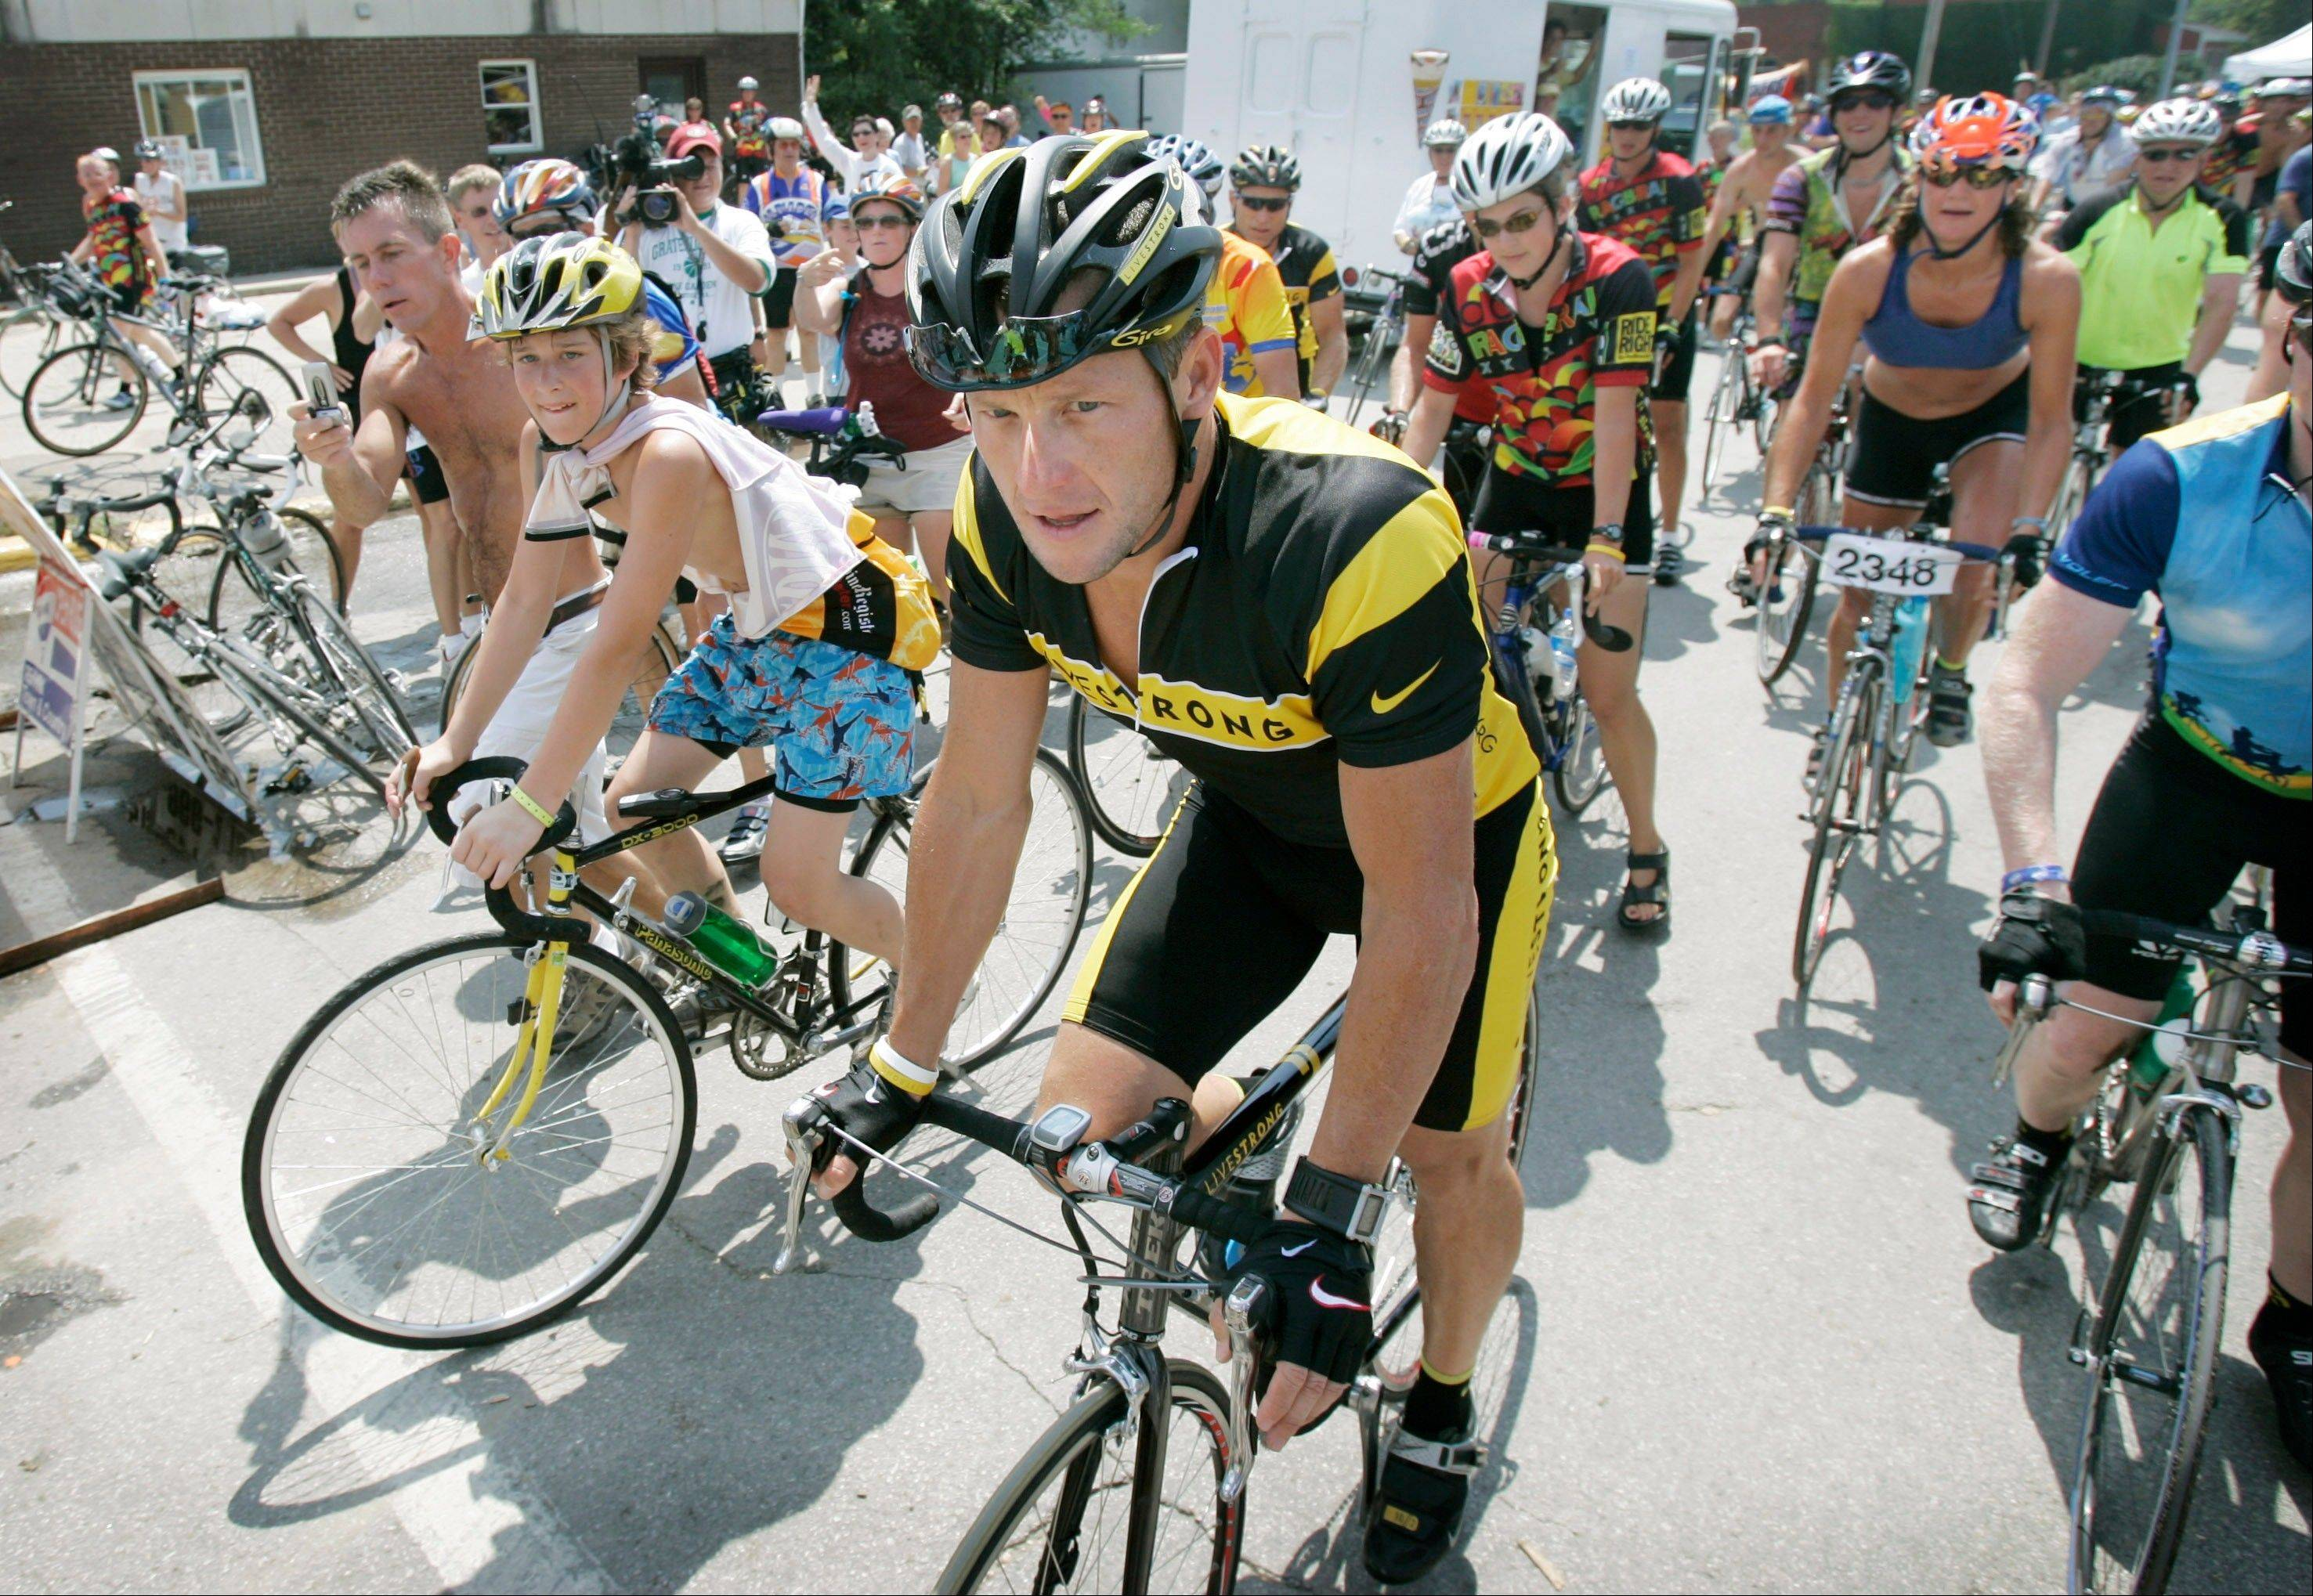 This July 26, 2006 file photo shows seven-time Tour de France winner Lance Armstrong as he heads out in Colfax, Iowa, with a group of riders during RAGBRAI, the Des Moines Register's Annual Great Bike Ride Across Iowa. The largest and oldest of the rides is the seven-day RAGBRAI, which takes 10,000 cyclists about 500 miles around Iowa's rolling hills every July.